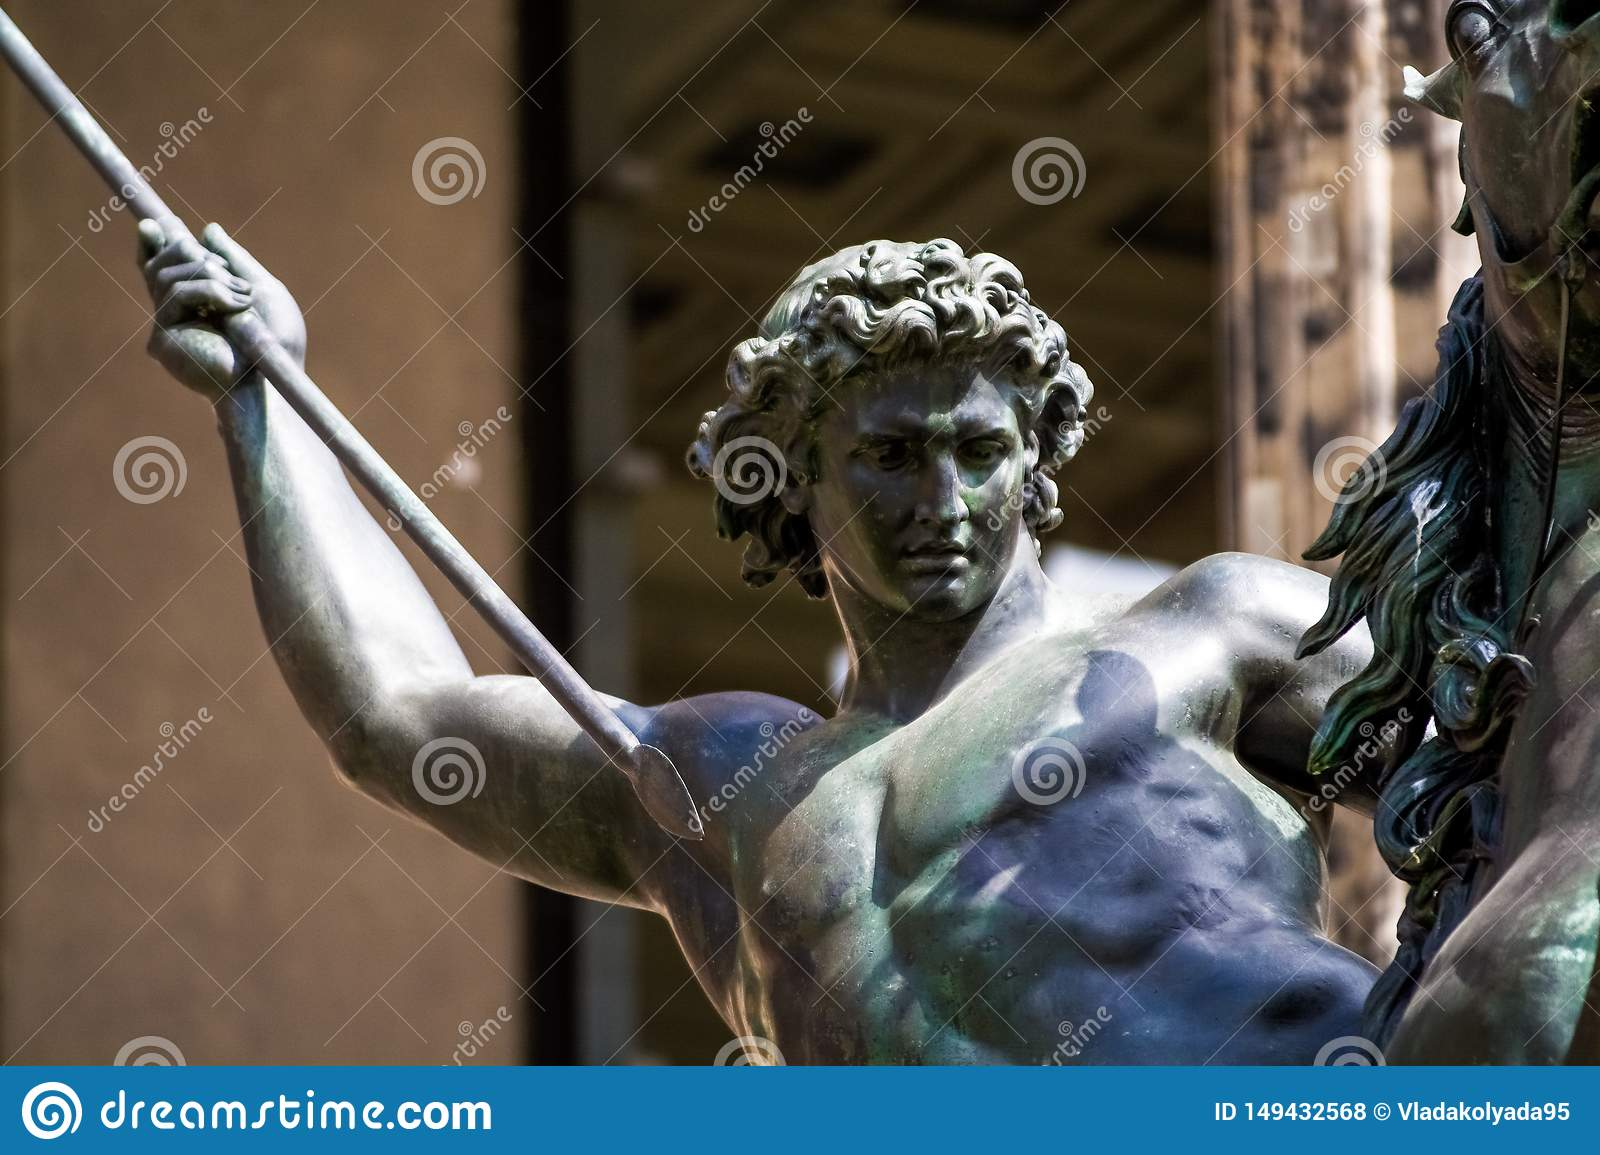 14.05.2019. Berlin, Germany. The old historical building on city streets. The historical museum with sculptures from metal on the